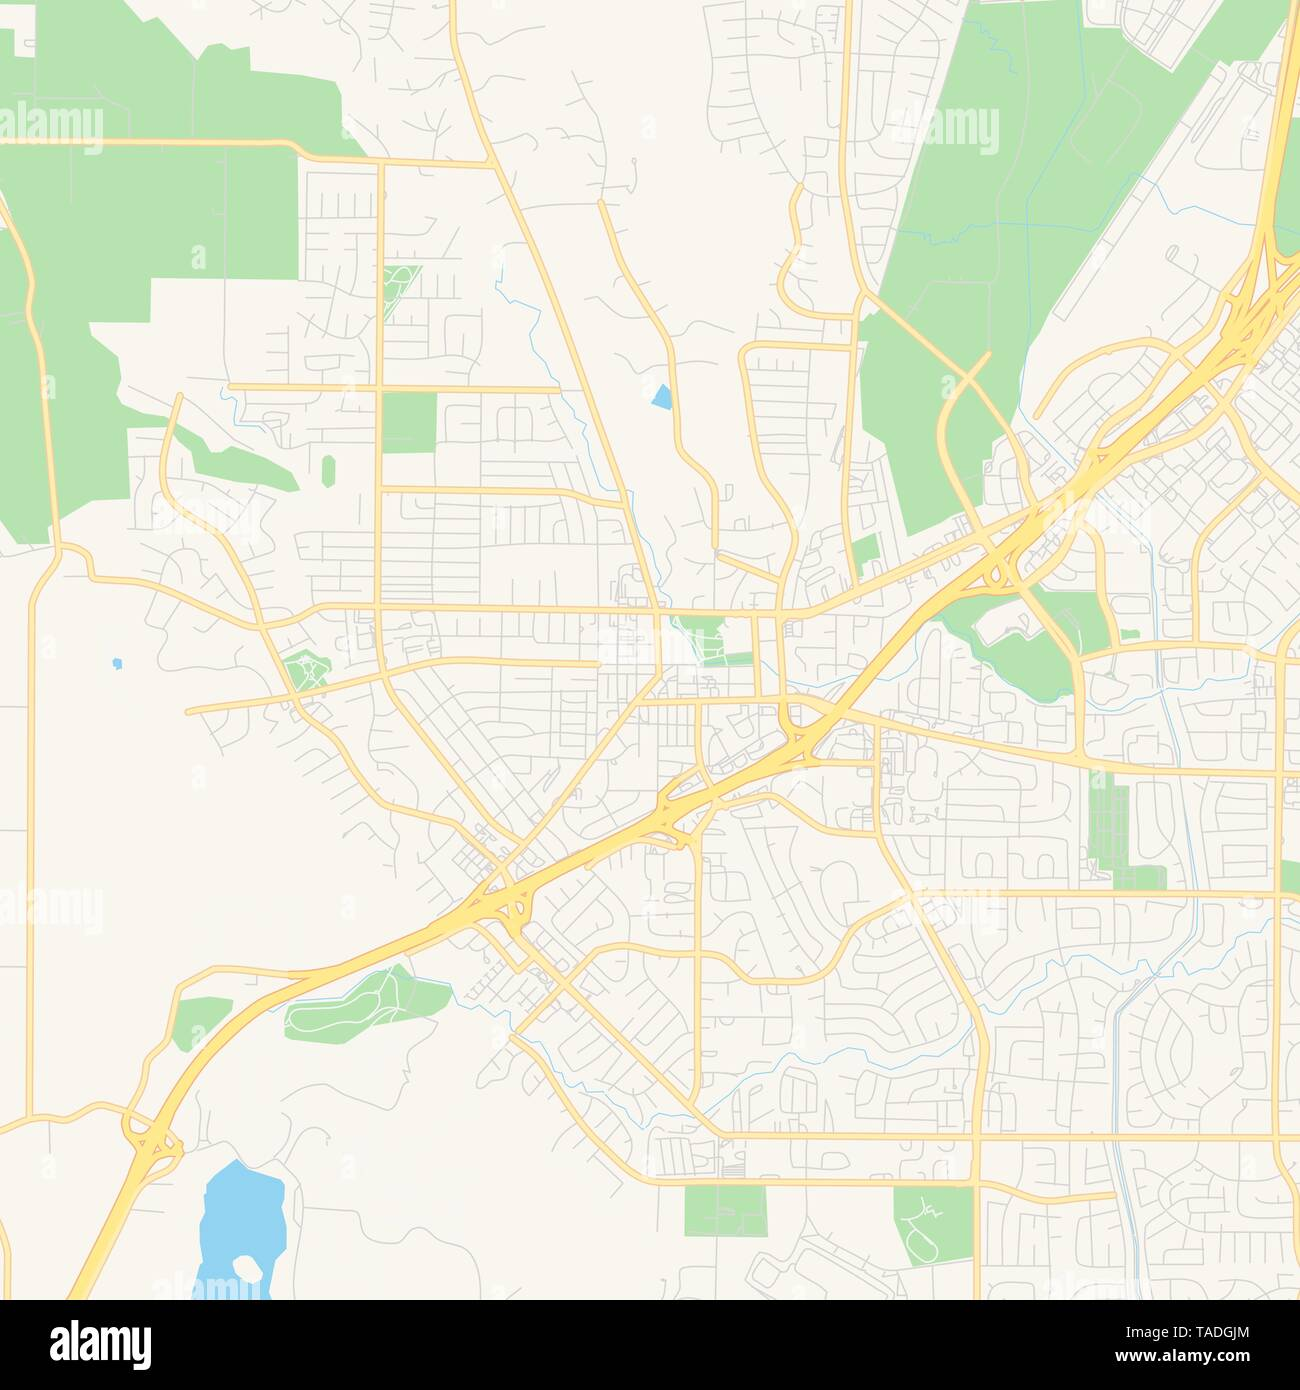 Map Of California Vacaville.Empty Vector Map Of Vacaville California Usa Printable Road Map